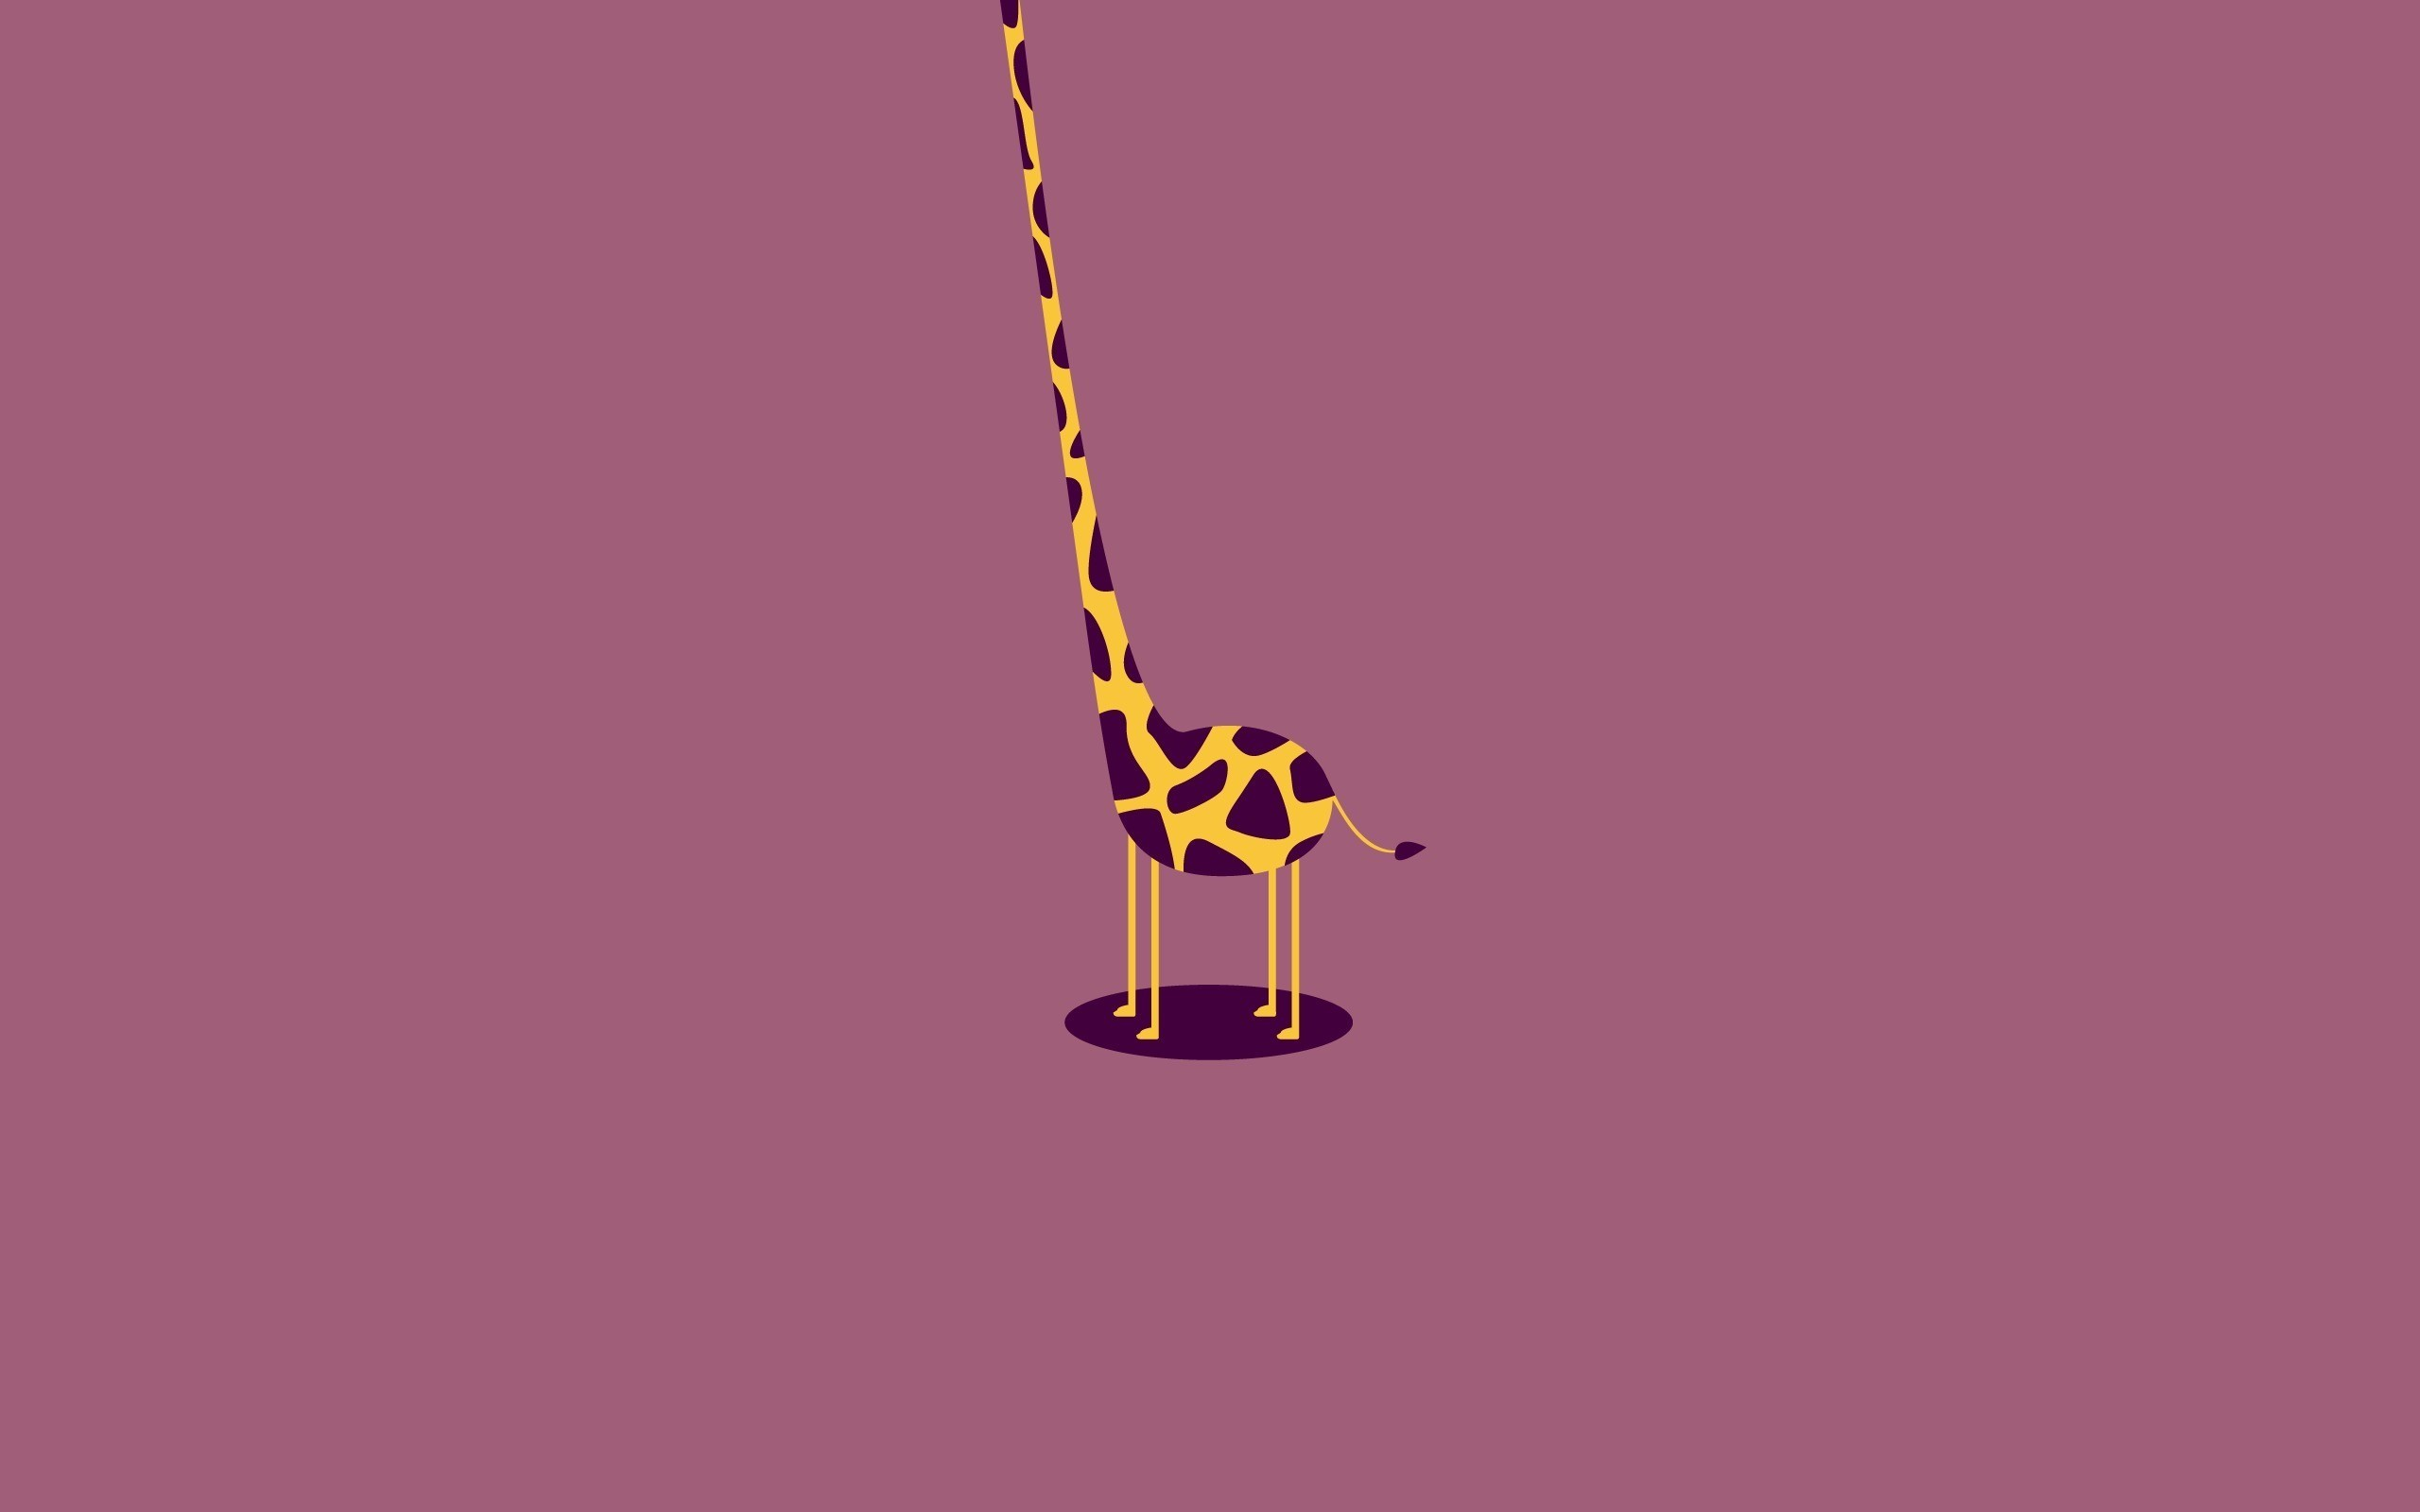 2560x1600 Giraffe Desktop Wallpapers, Stretching Giraffe Desktop Backgrounds .